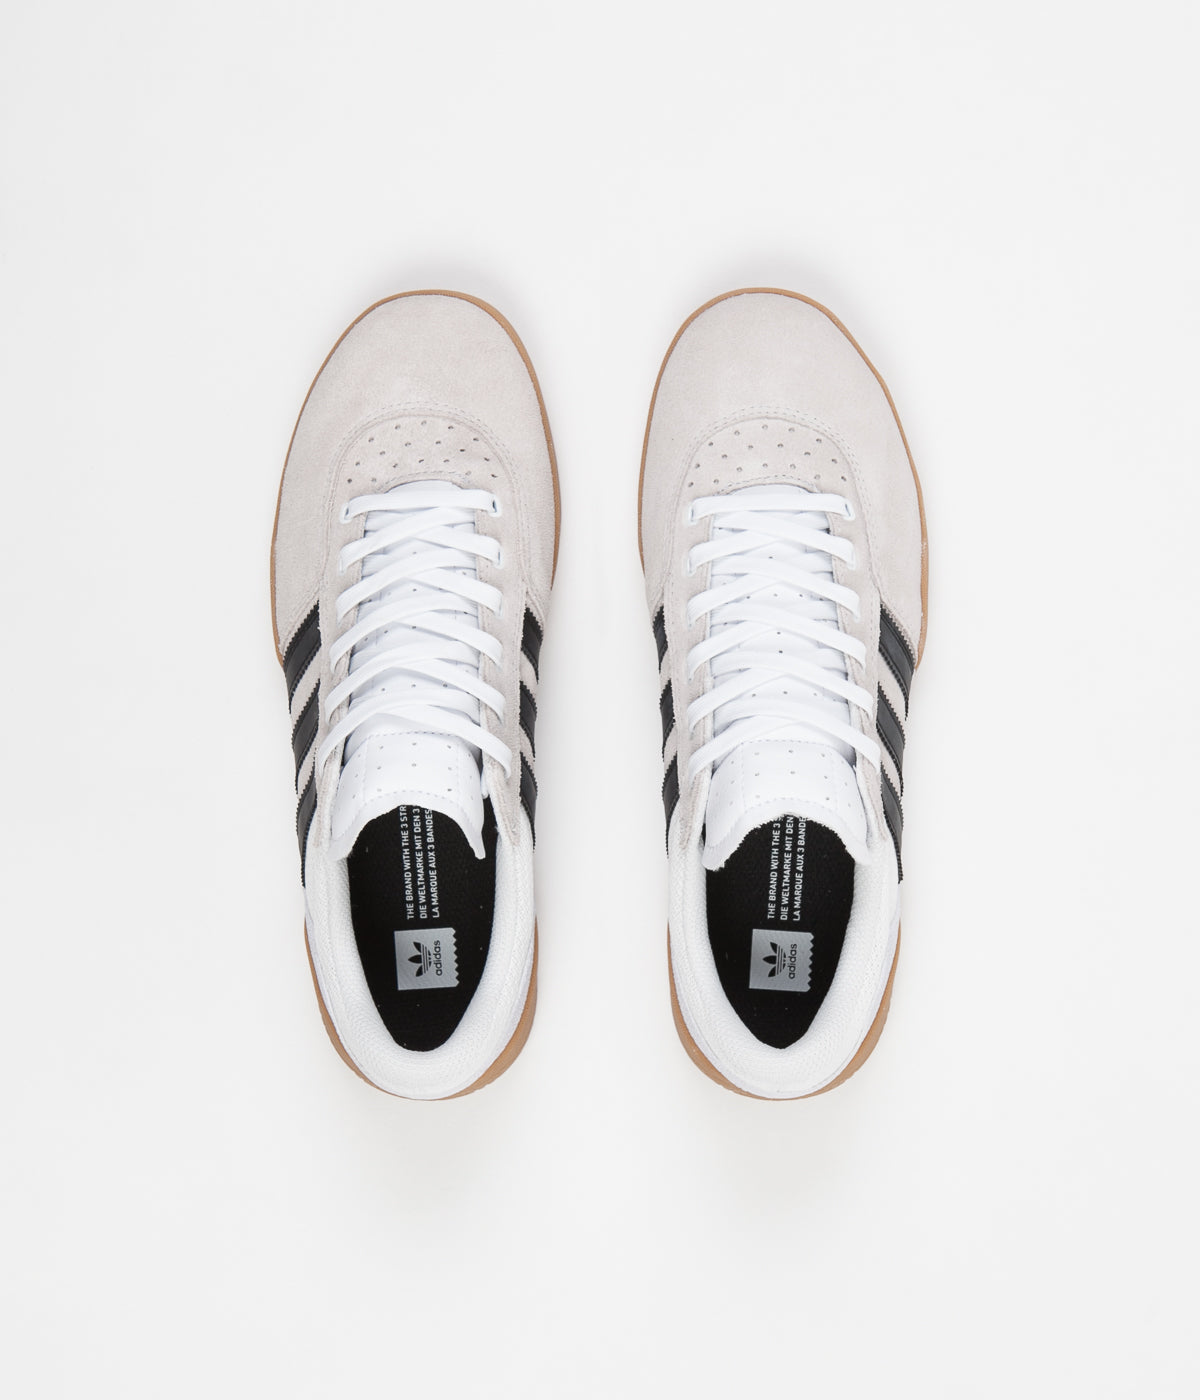 Adidas City Cup Shoes - White / Core Black / Gum4